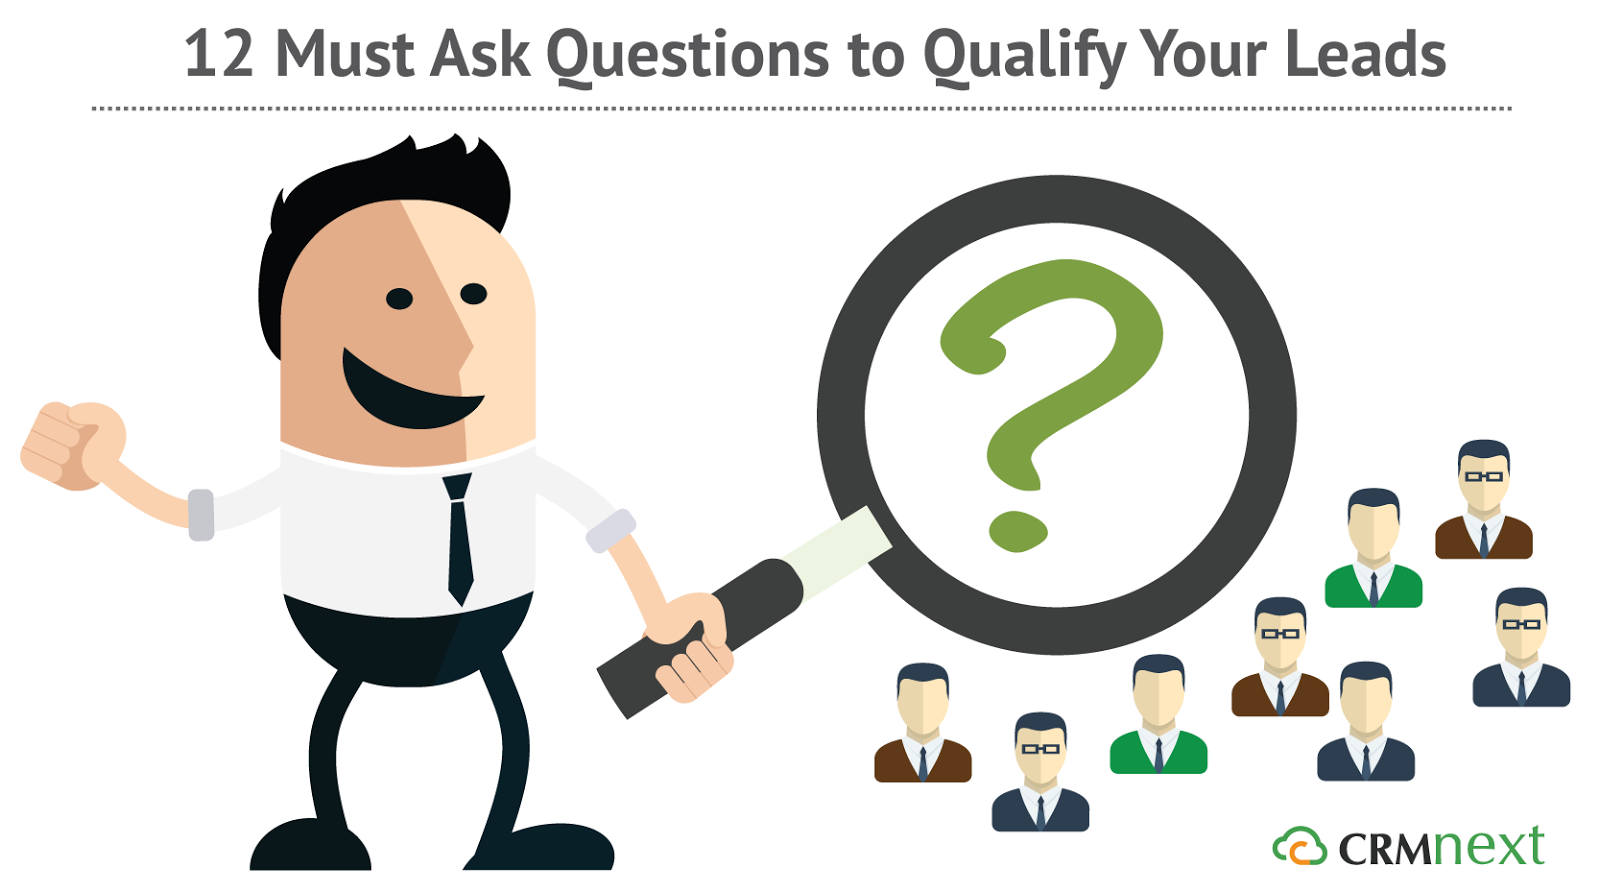 12 Must Ask Questions to Qualify Your Leads